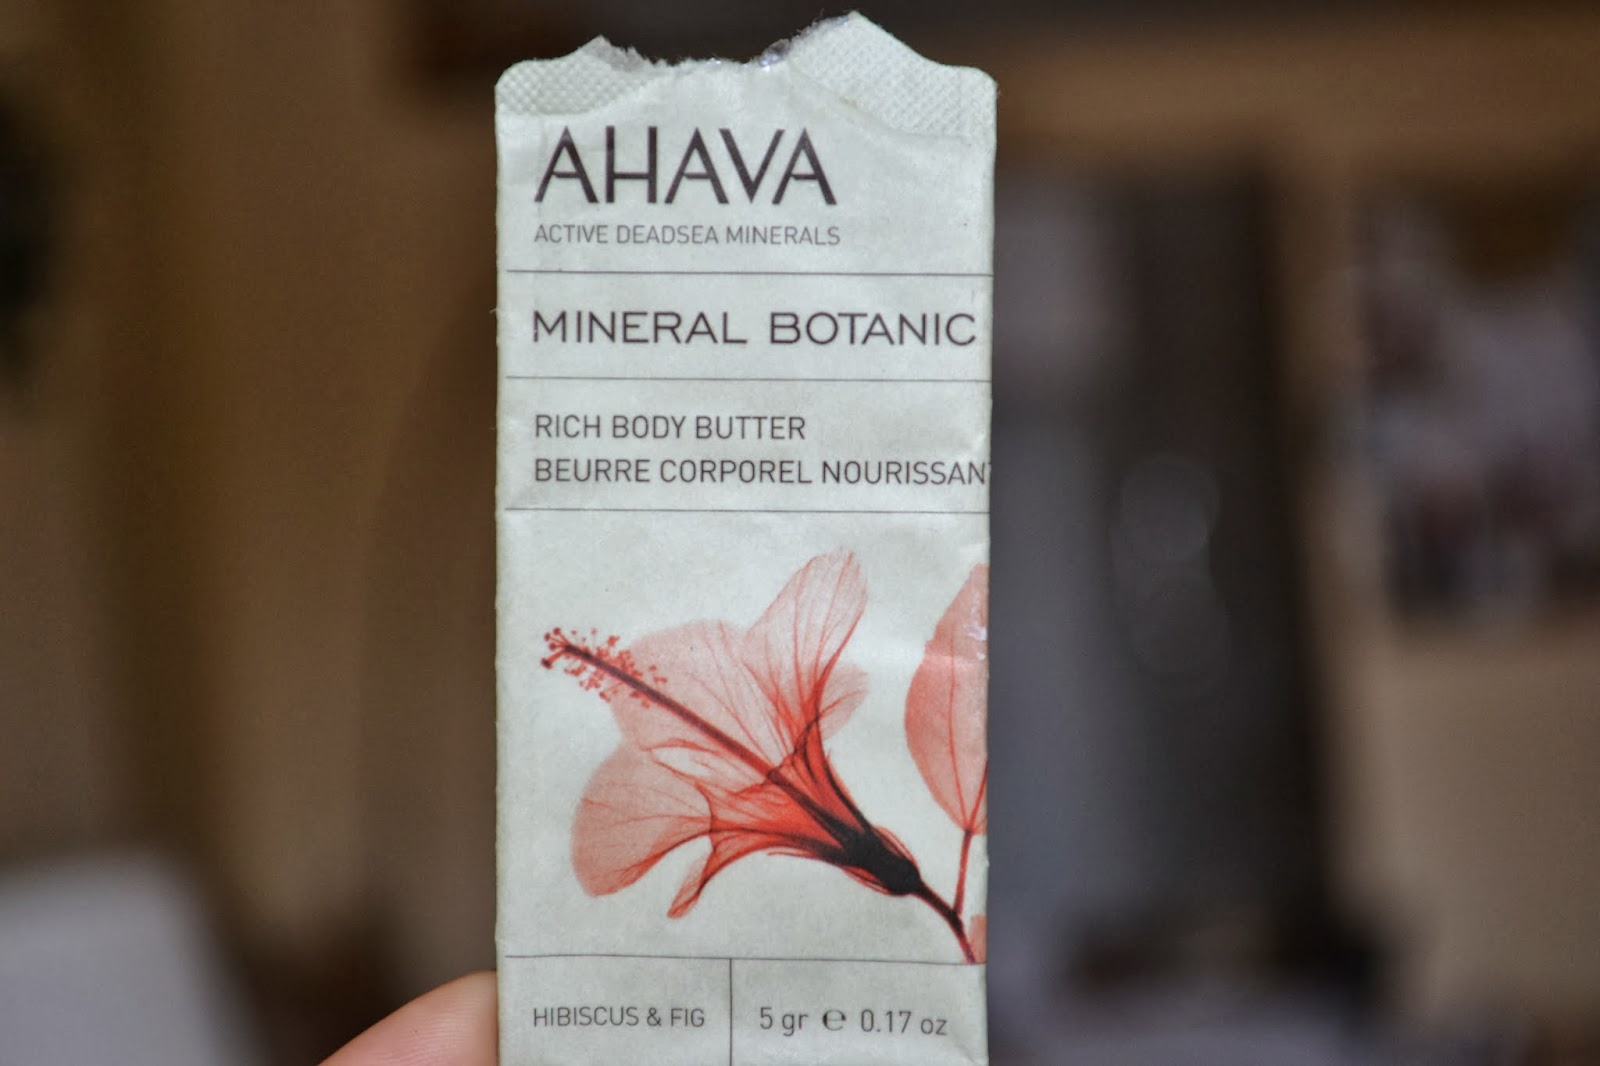 The Ahava Mineral Botanic Rich Body Butter in Hibiscus & Fig